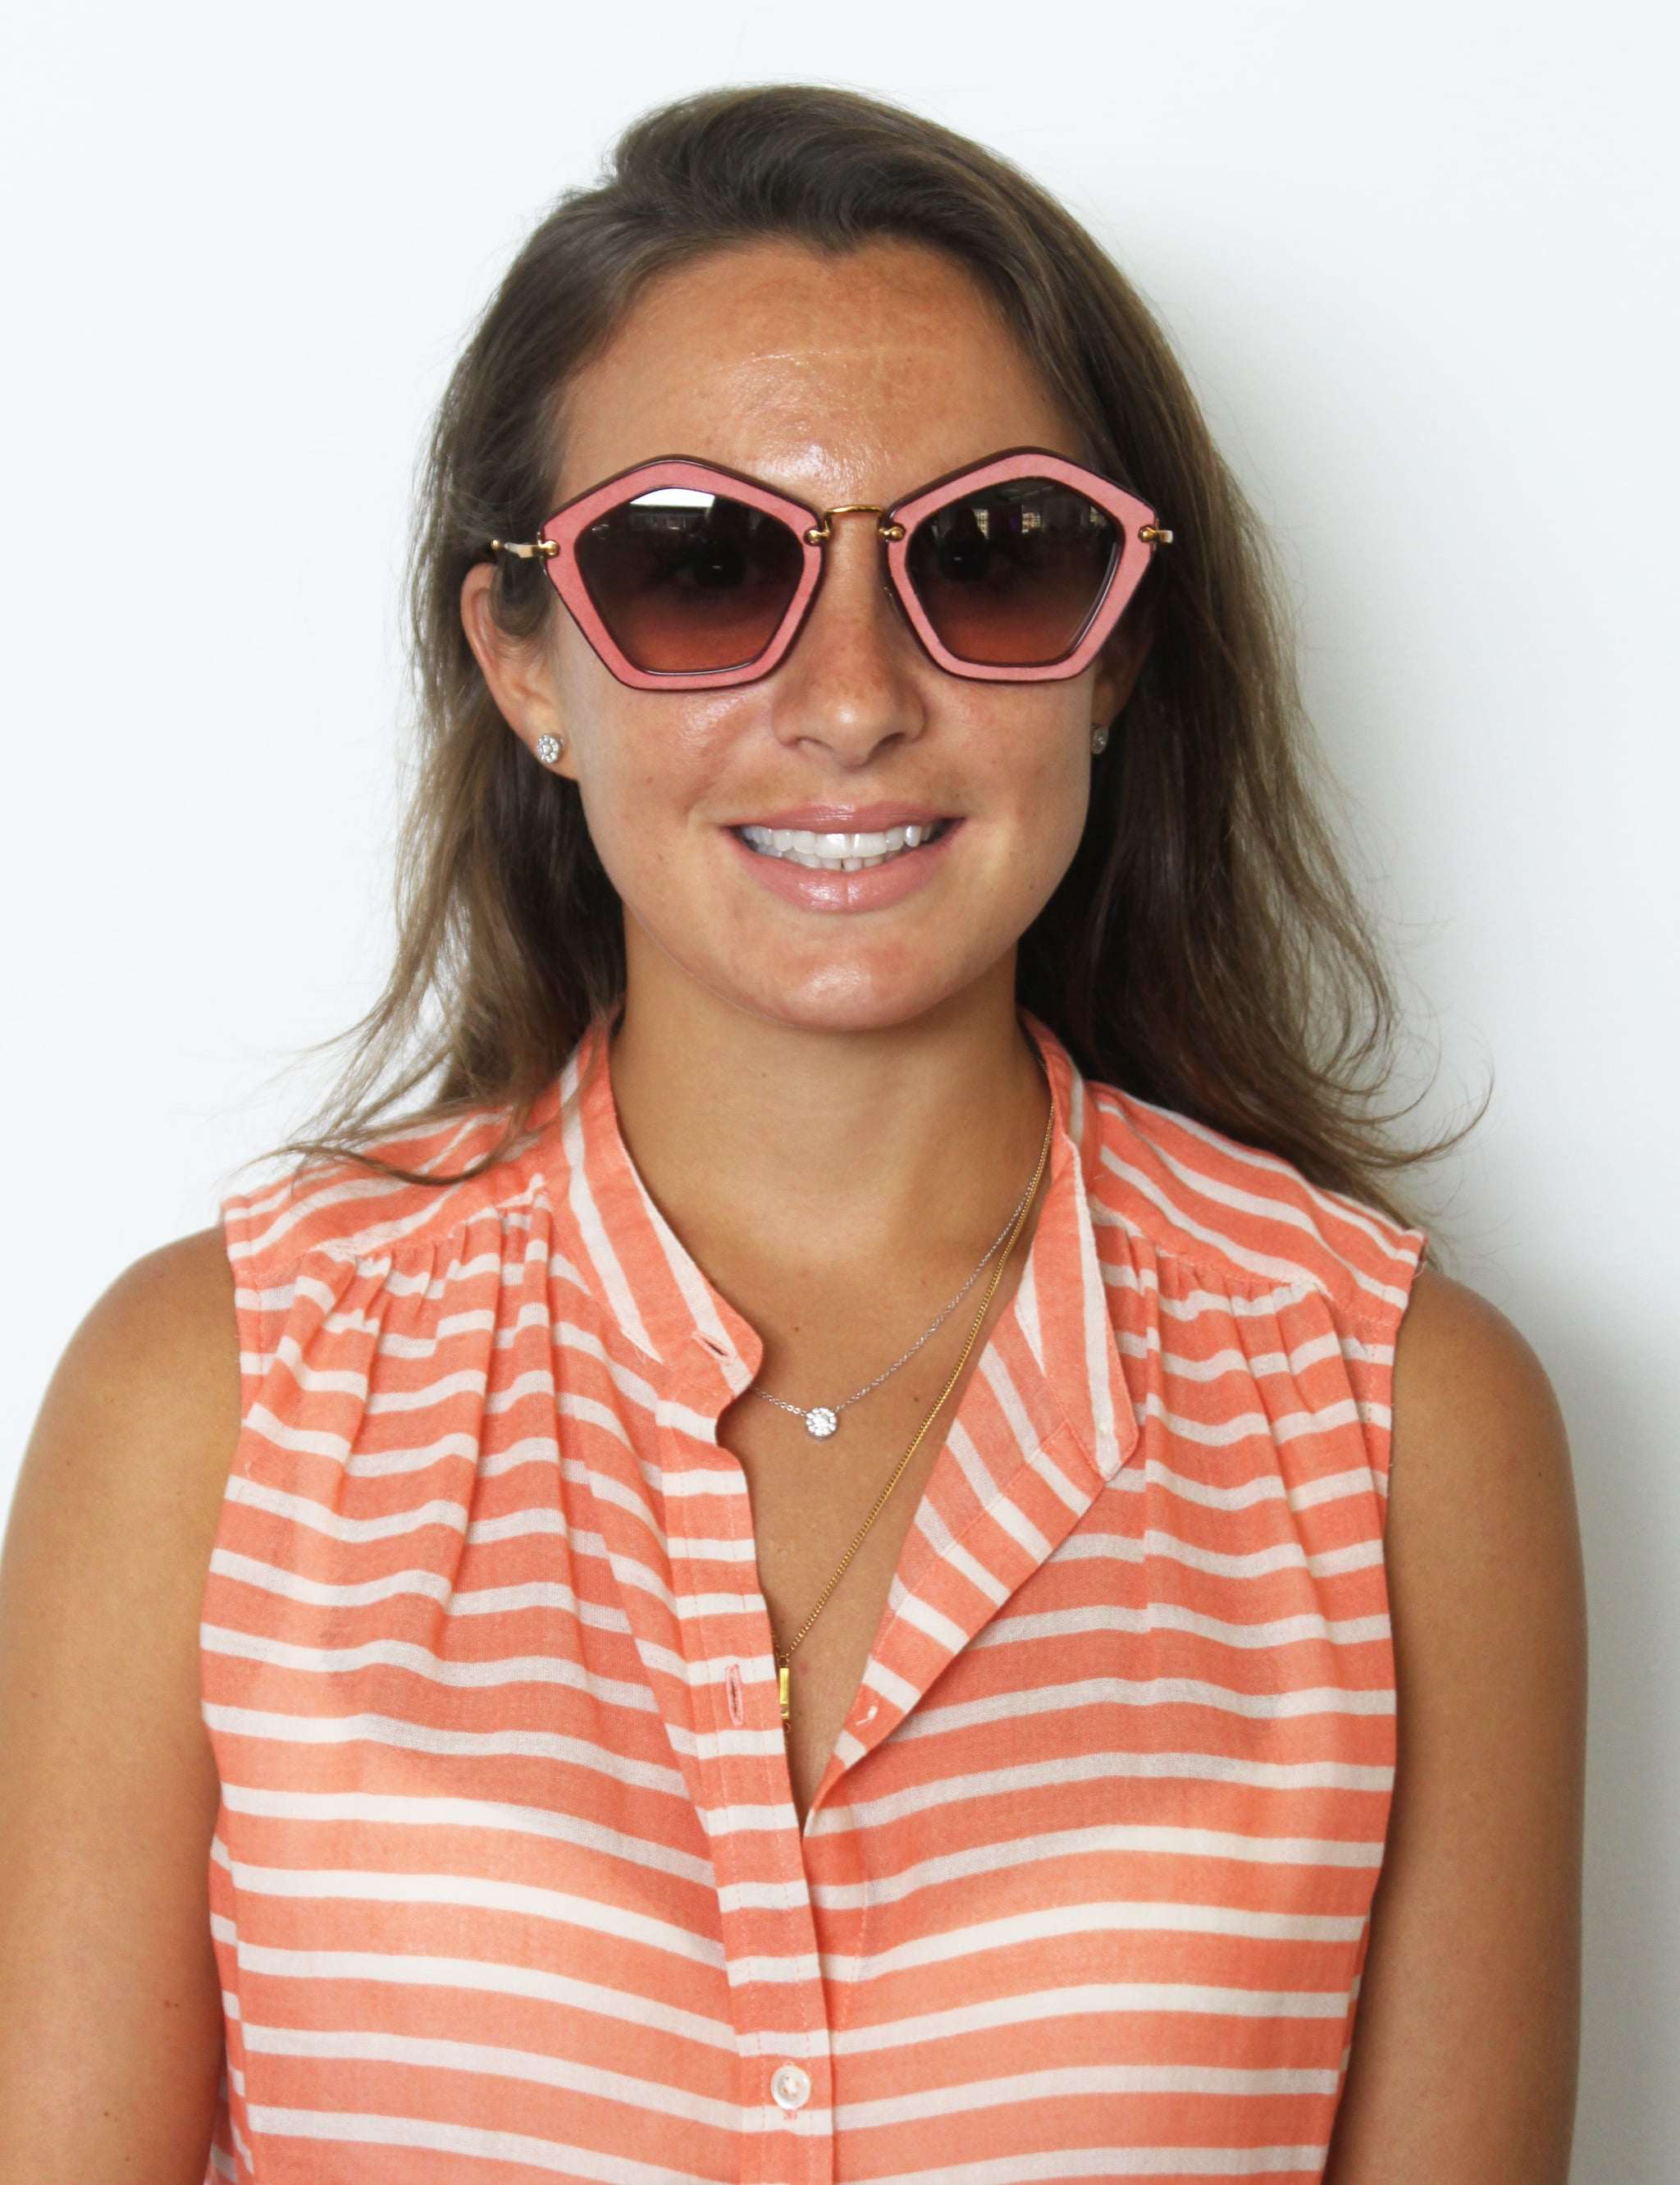 Not for the faint of heart, this geometric Miu Miu option is covered in petal-pink suede (similar style: Miu Miu 'Culte Collection' 57 mm Geometric Sunglasses, $340). To balance the color, texture, and shape, go for a neutral lip color like BareMinerals Marvelous Moxie Lipstick in Be Free ($18).